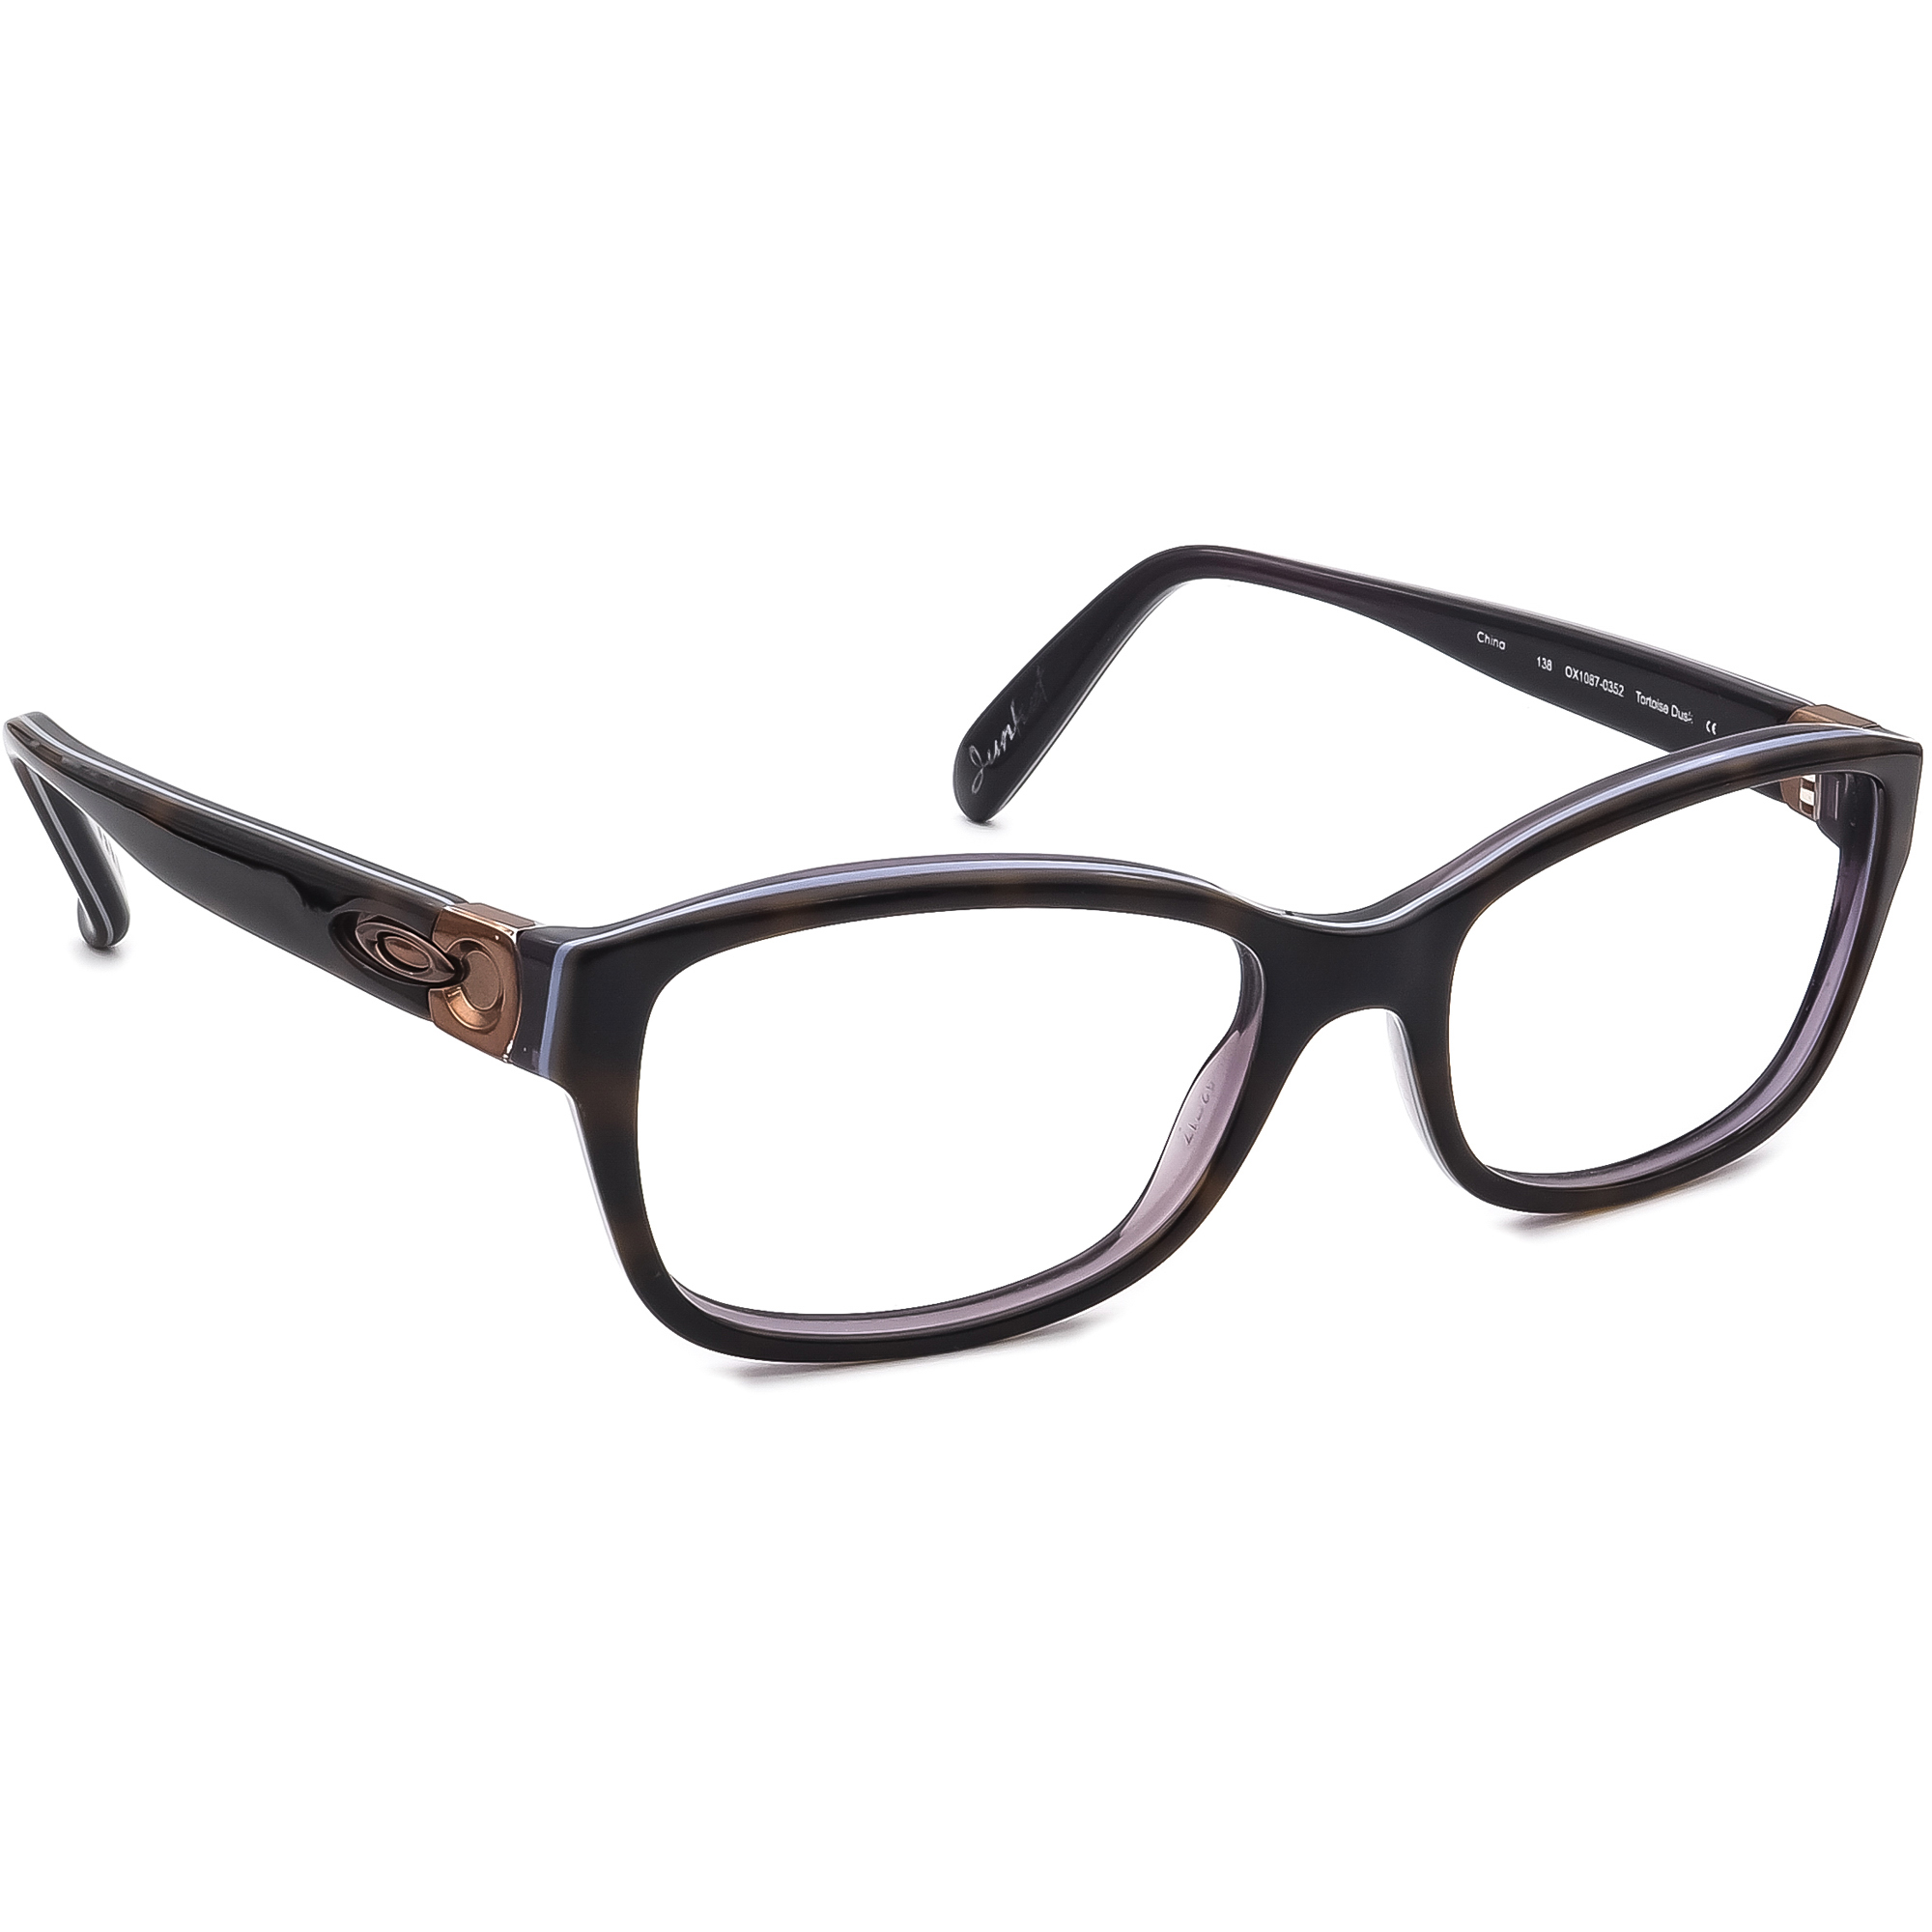 Oakley OX1087-0352 Eyeglasses